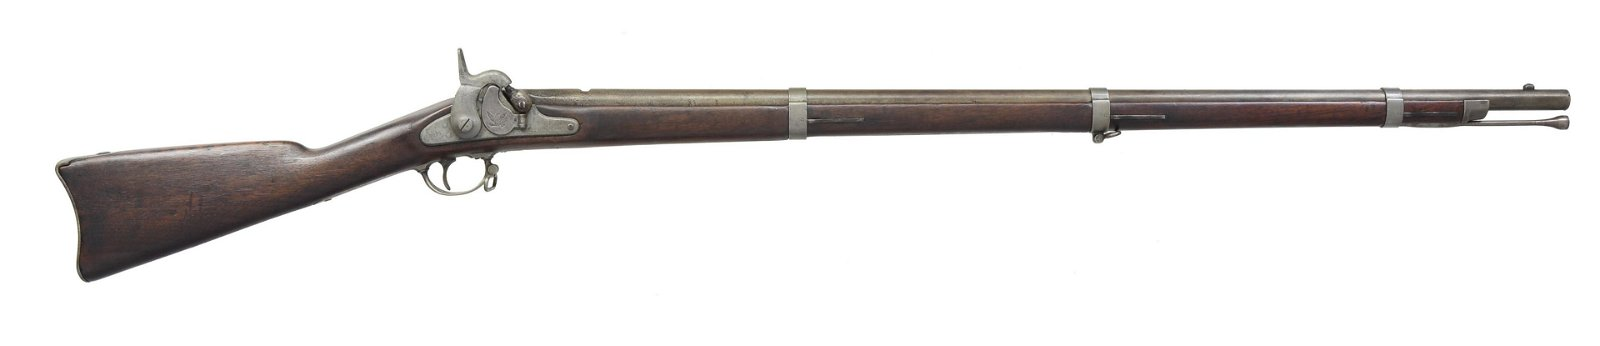 1859 DATED SPRINGFIELD MODEL 1855 RIFLE MUSKET.